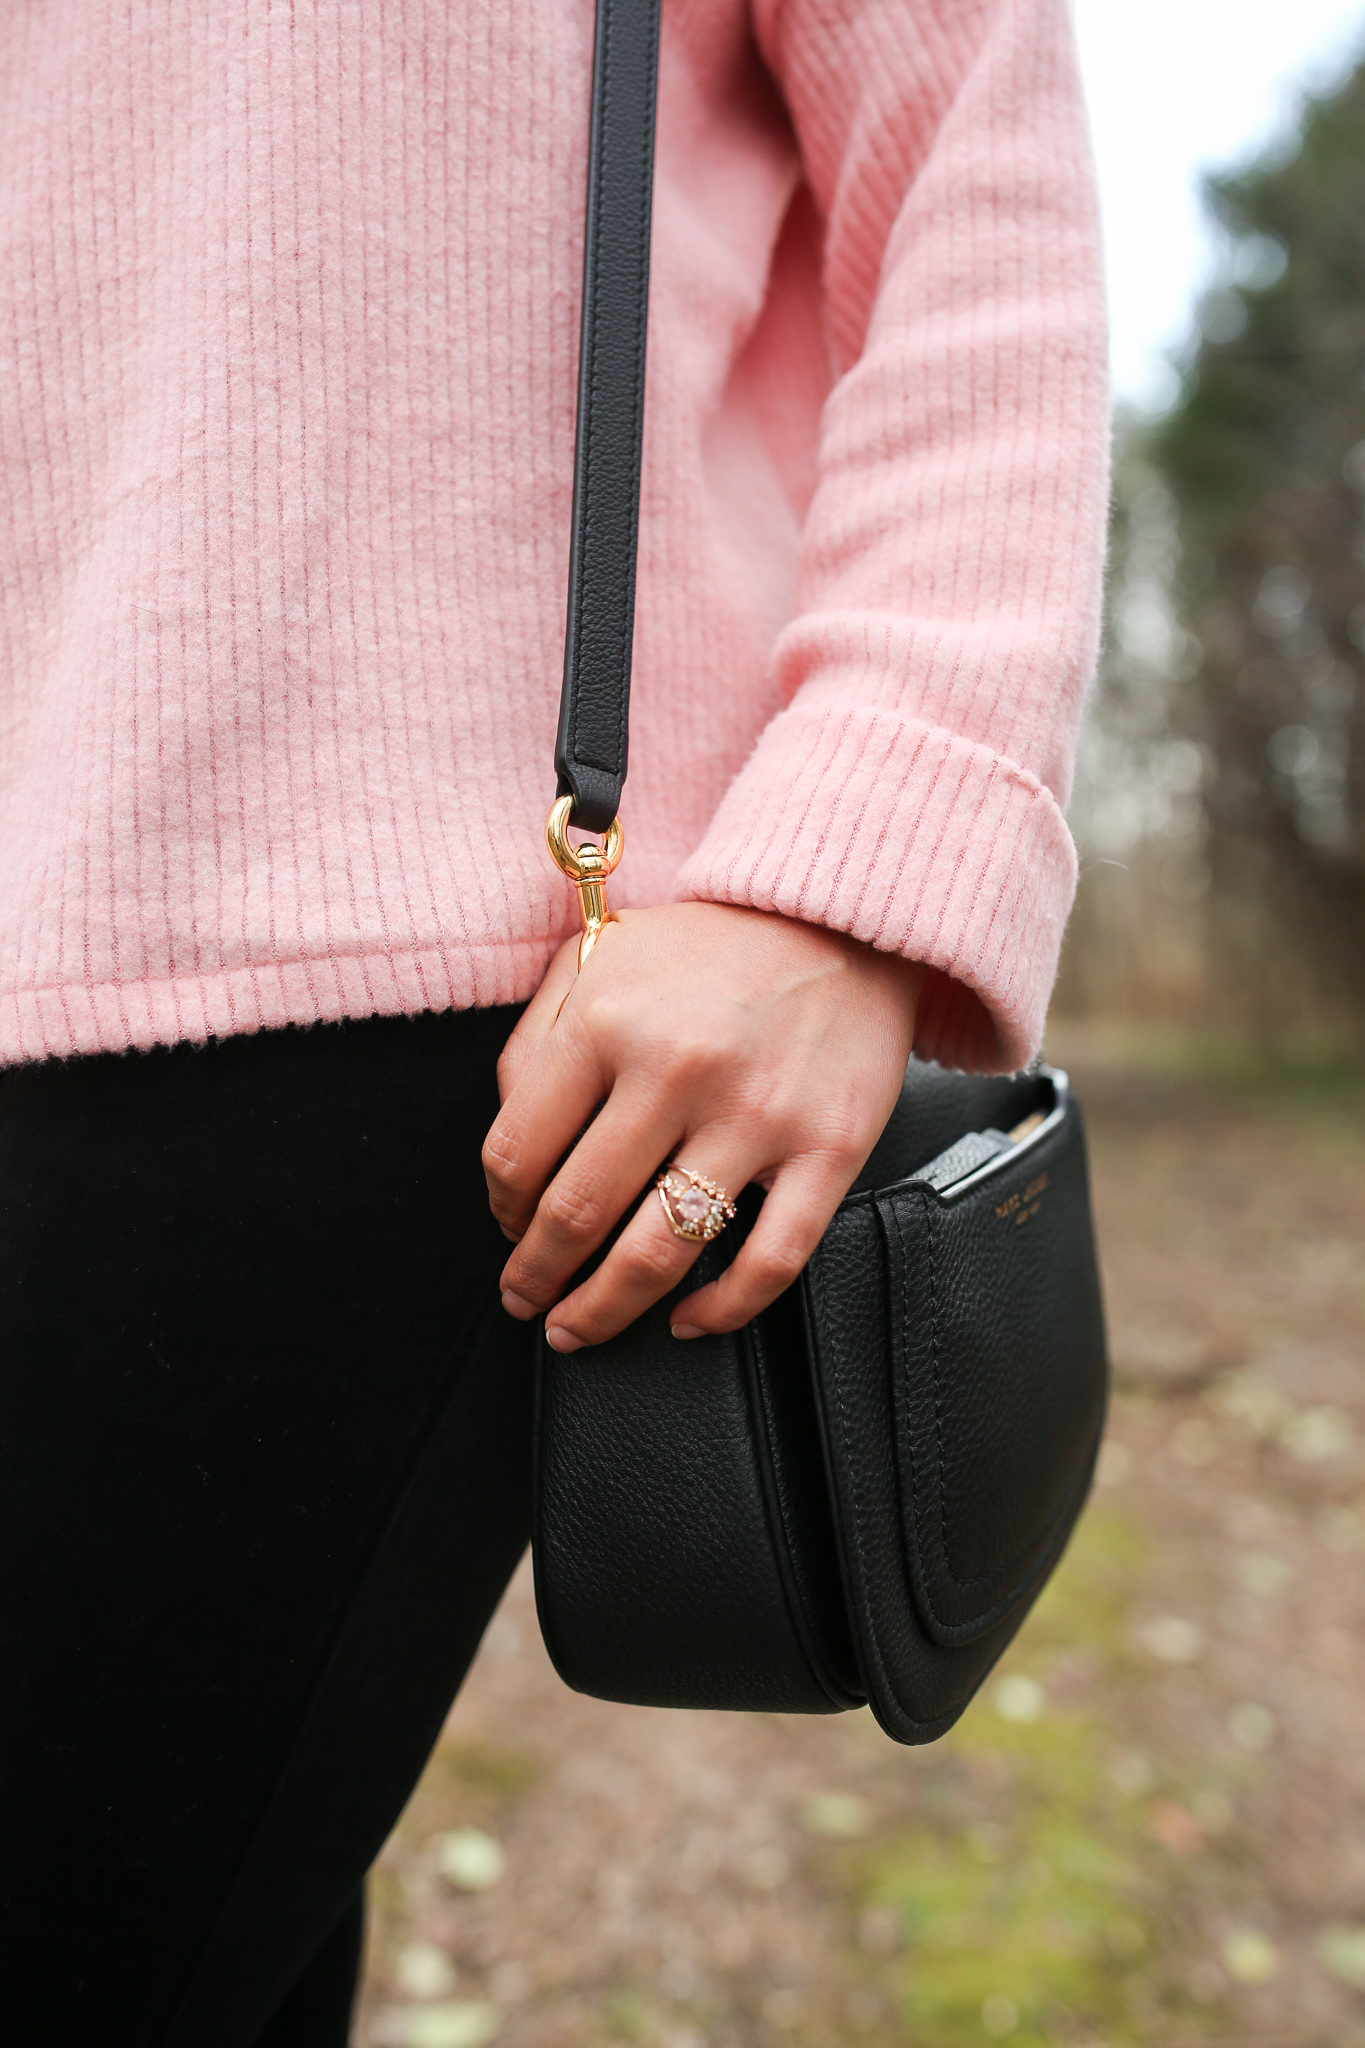 Priya the Blog, Nashville fashion blog, Nashville fashion blogger, Winter outfit, Winter style, how to style a pink sweater, how to style white combat boots, white combat boots, Spanx velvet leggings, how to style Spanx velvet leggings, velvet leggings outfit, personal style uniforms